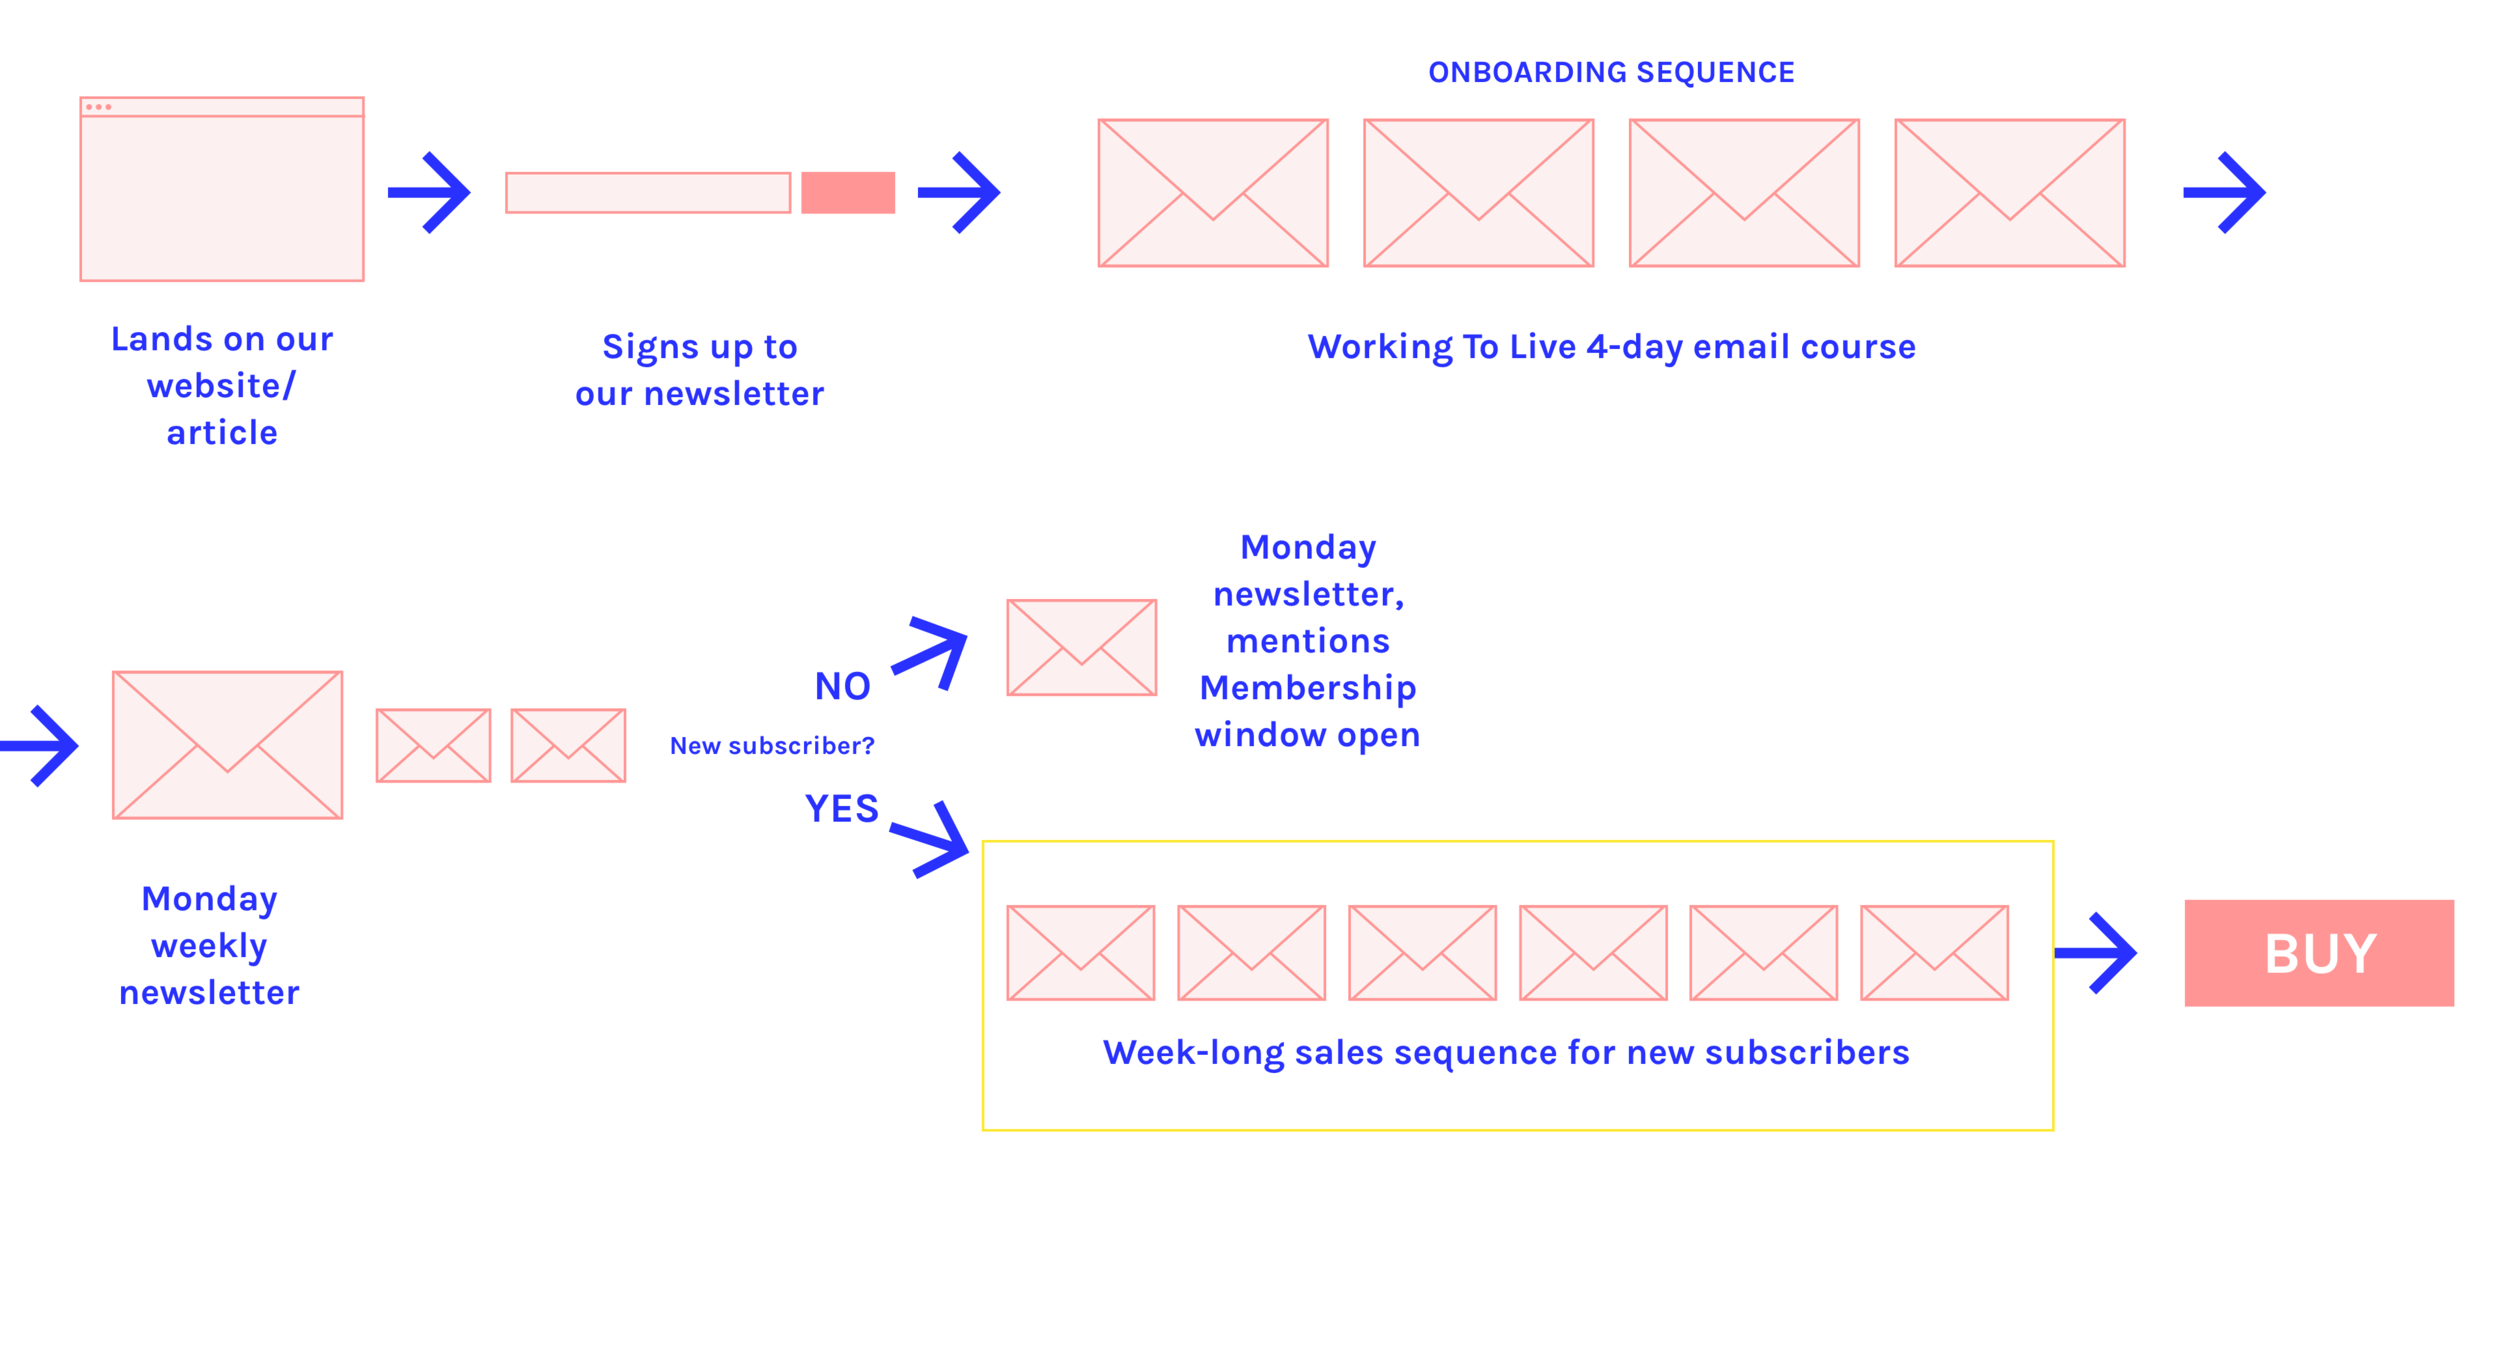 Email journey with onboarding and sales sequence added